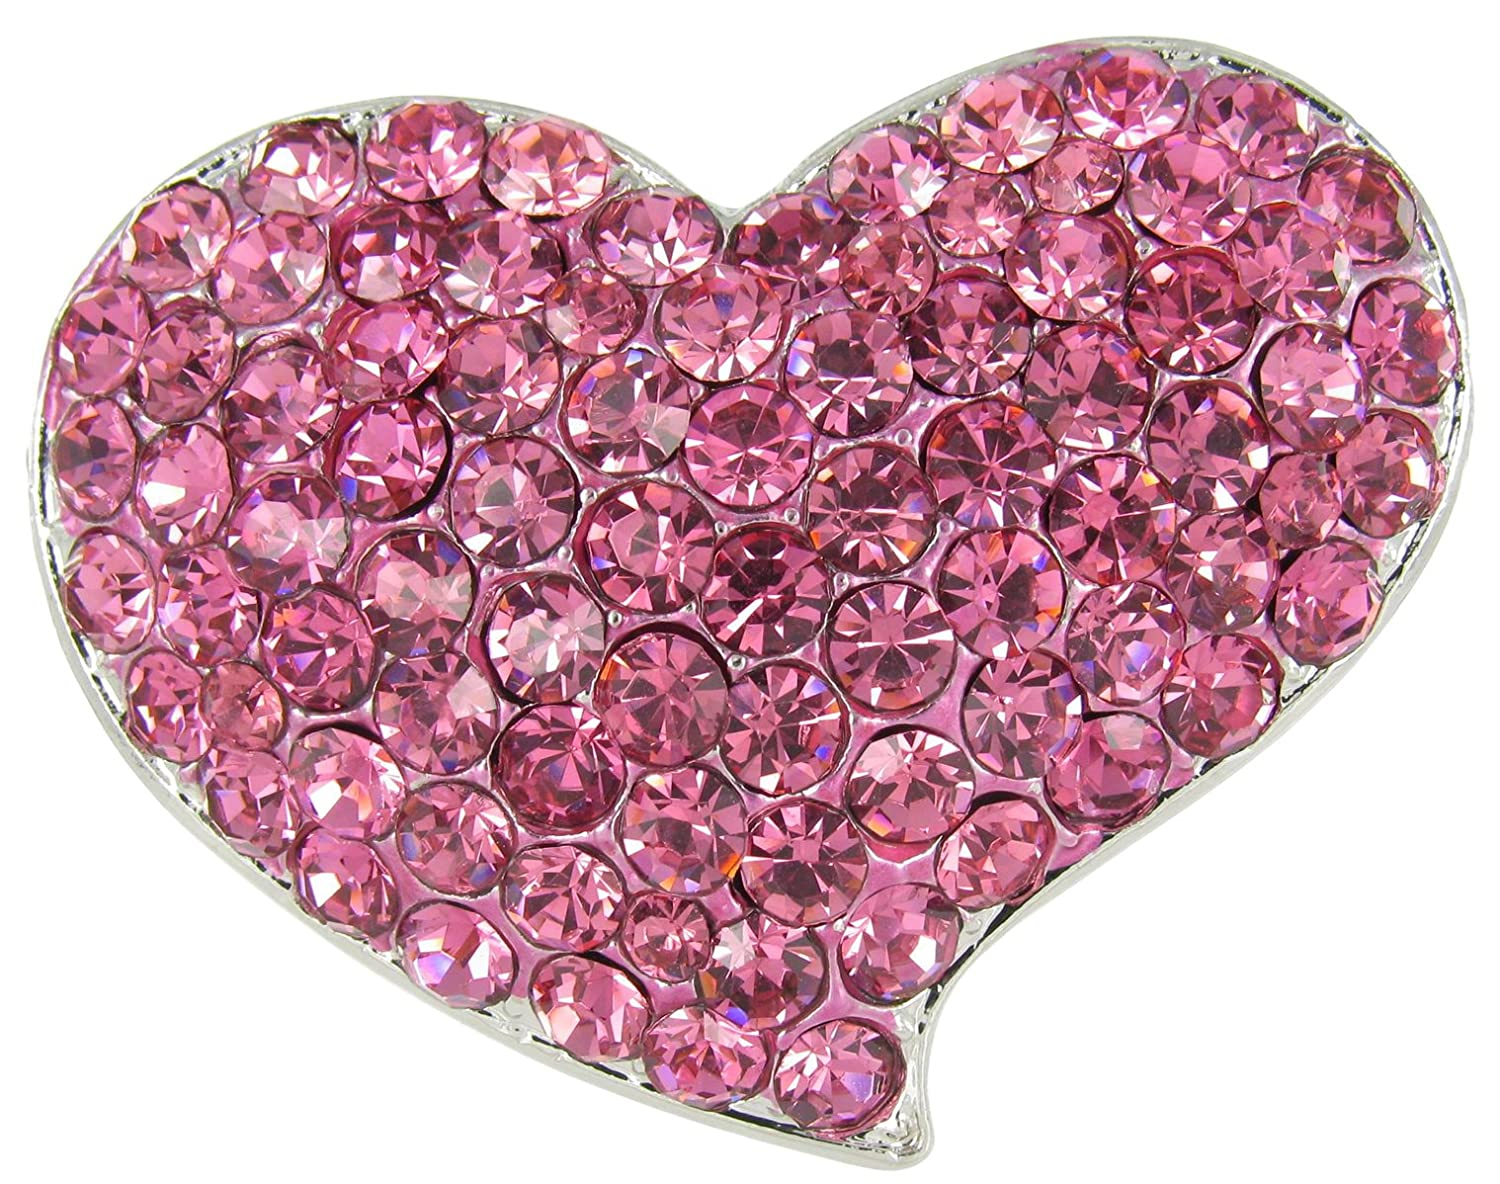 Be My Valentine Heart Bubble Rhinestone Brooch Pin with Hot Pink Crystals RUL 0097017DPK